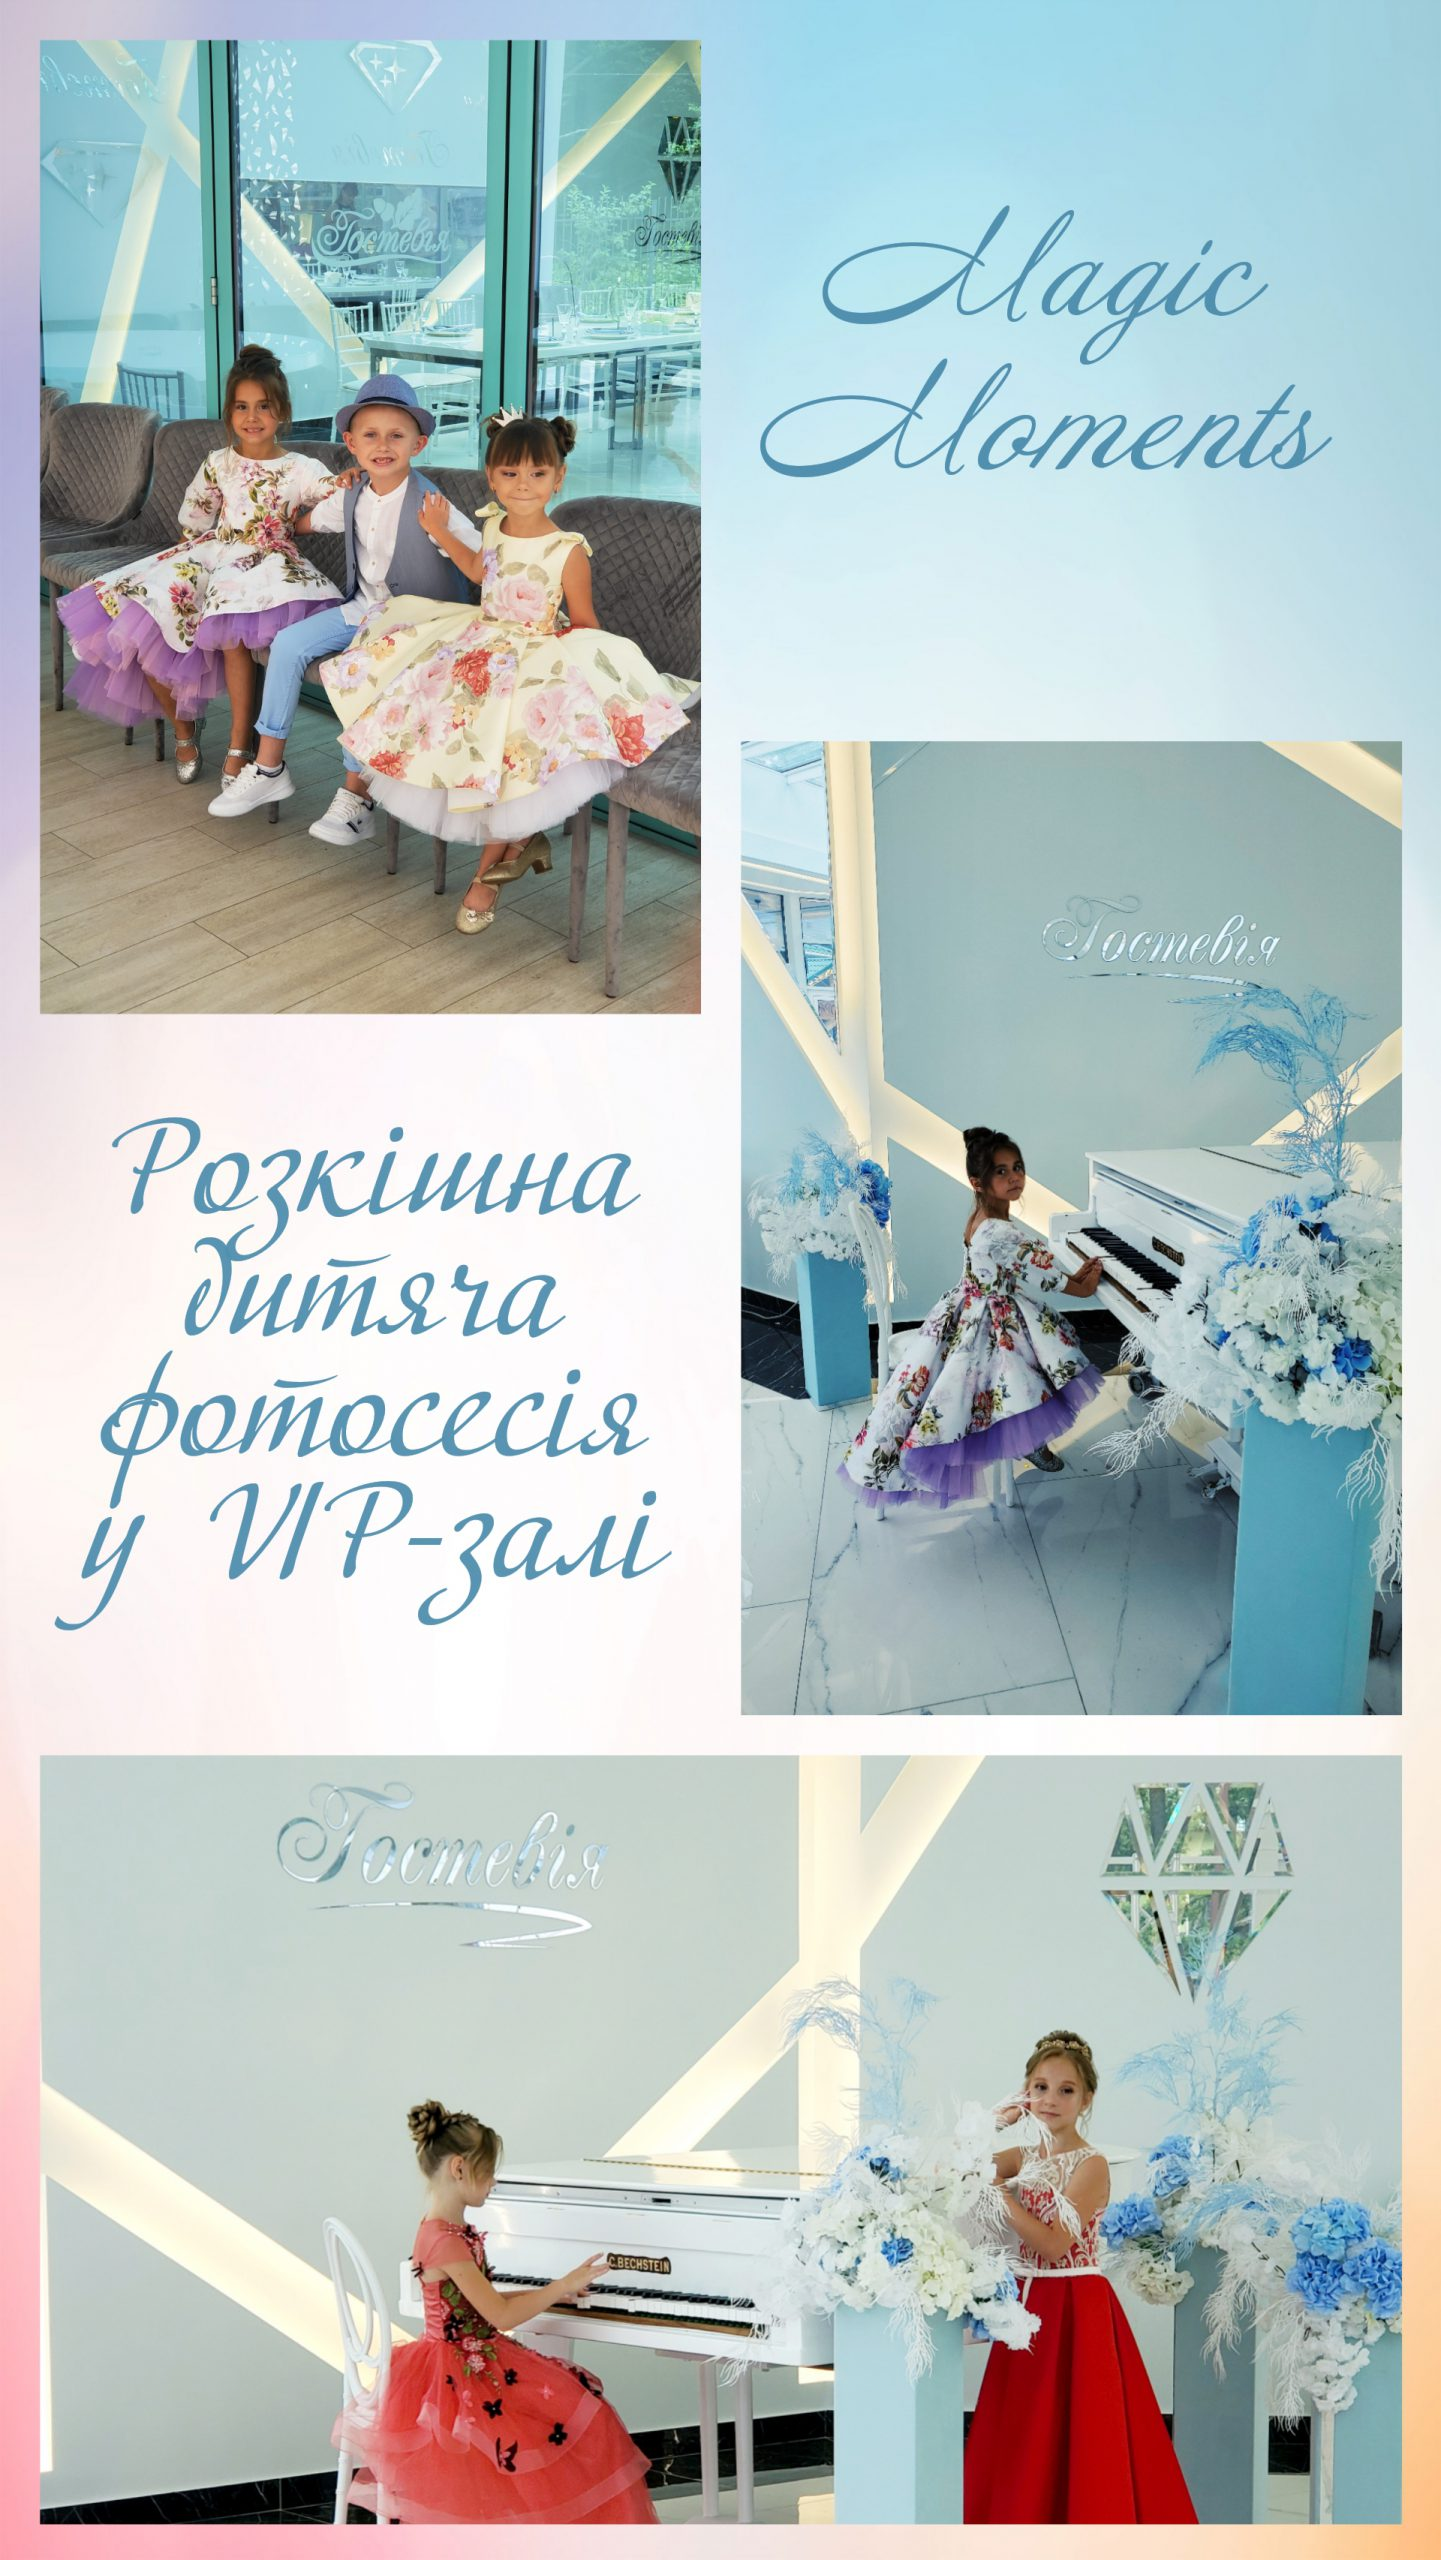 poster_1594394756765